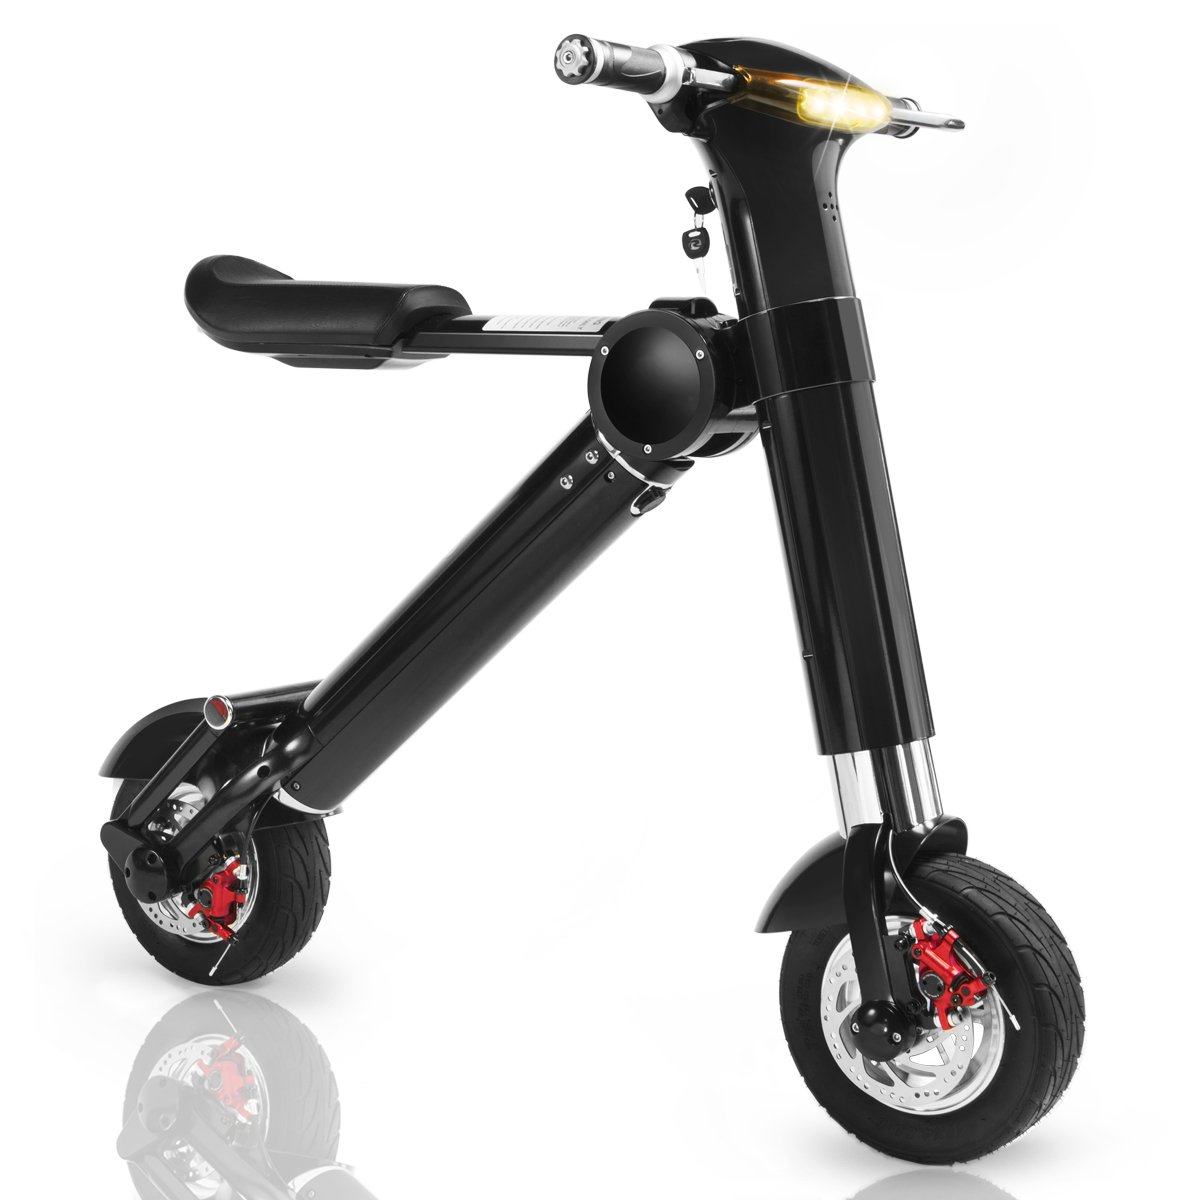 XtremepowerUS 20 MPH Folding Electric Bicycle, Black